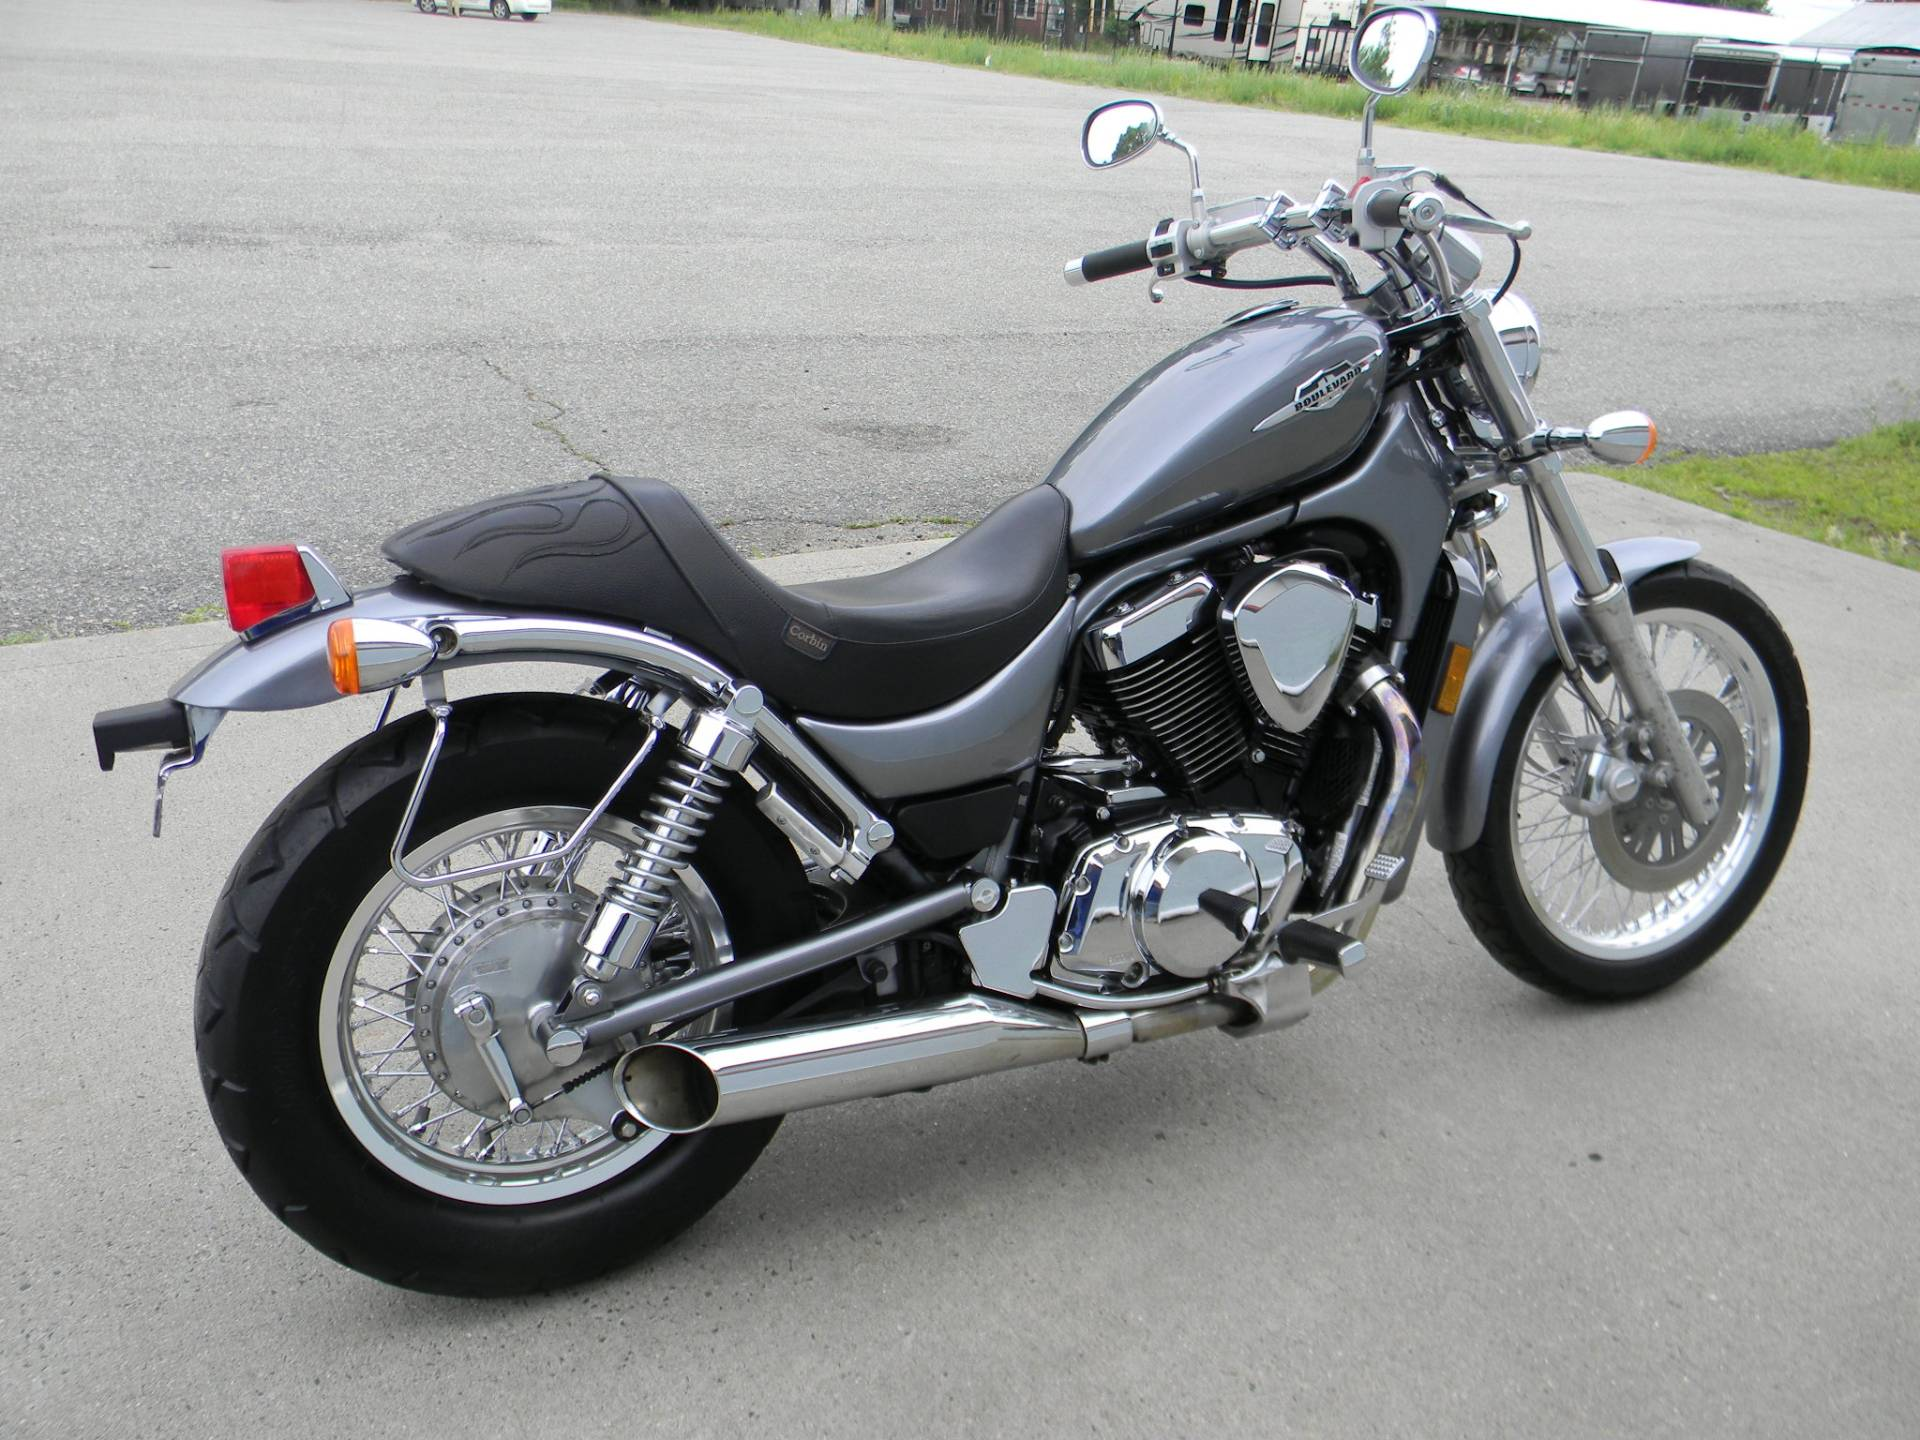 2005 Suzuki Boulevard S50 in Springfield, Massachusetts - Photo 3